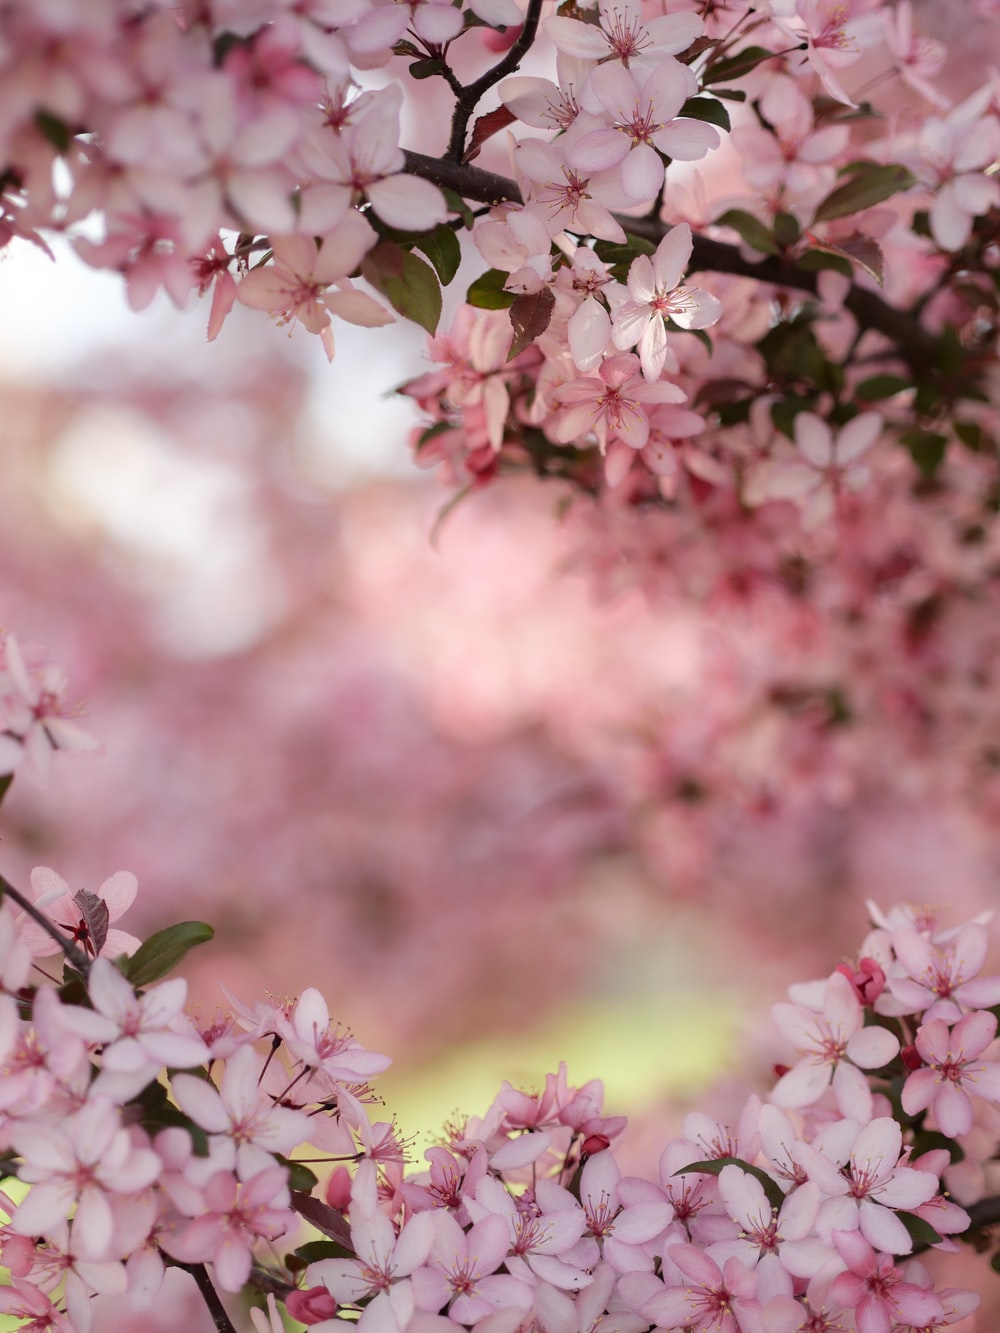 Pretty background pictures hq download free images on unsplash selective focus photography of cherry blossoms izmirmasajfo